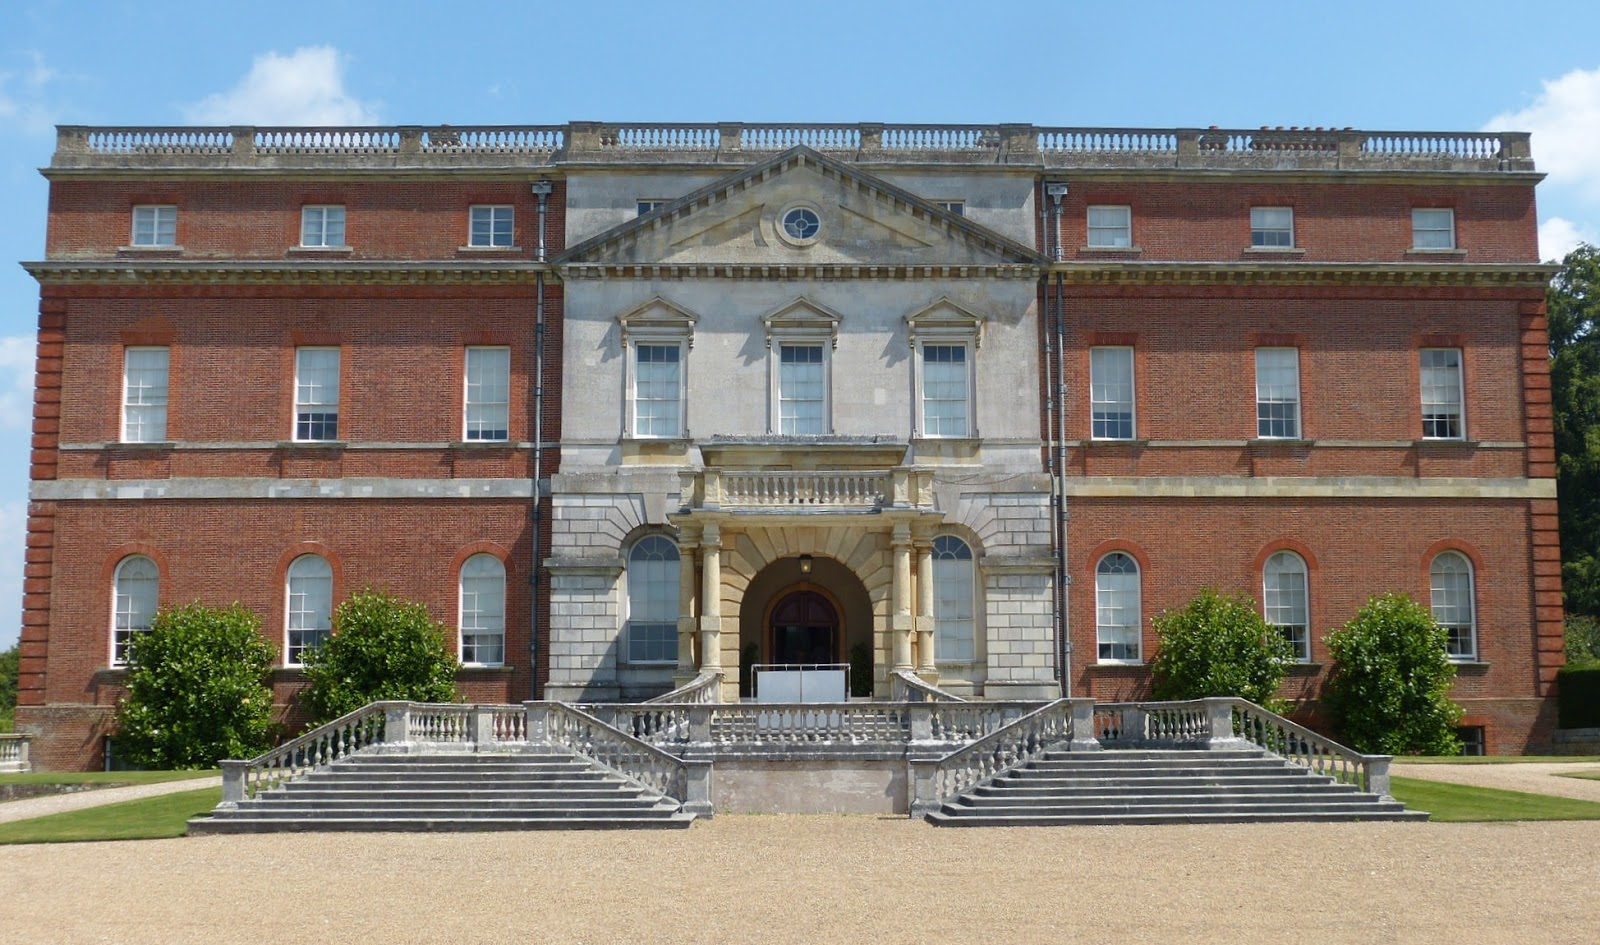 Regency history clandon park remembering the house Design house international